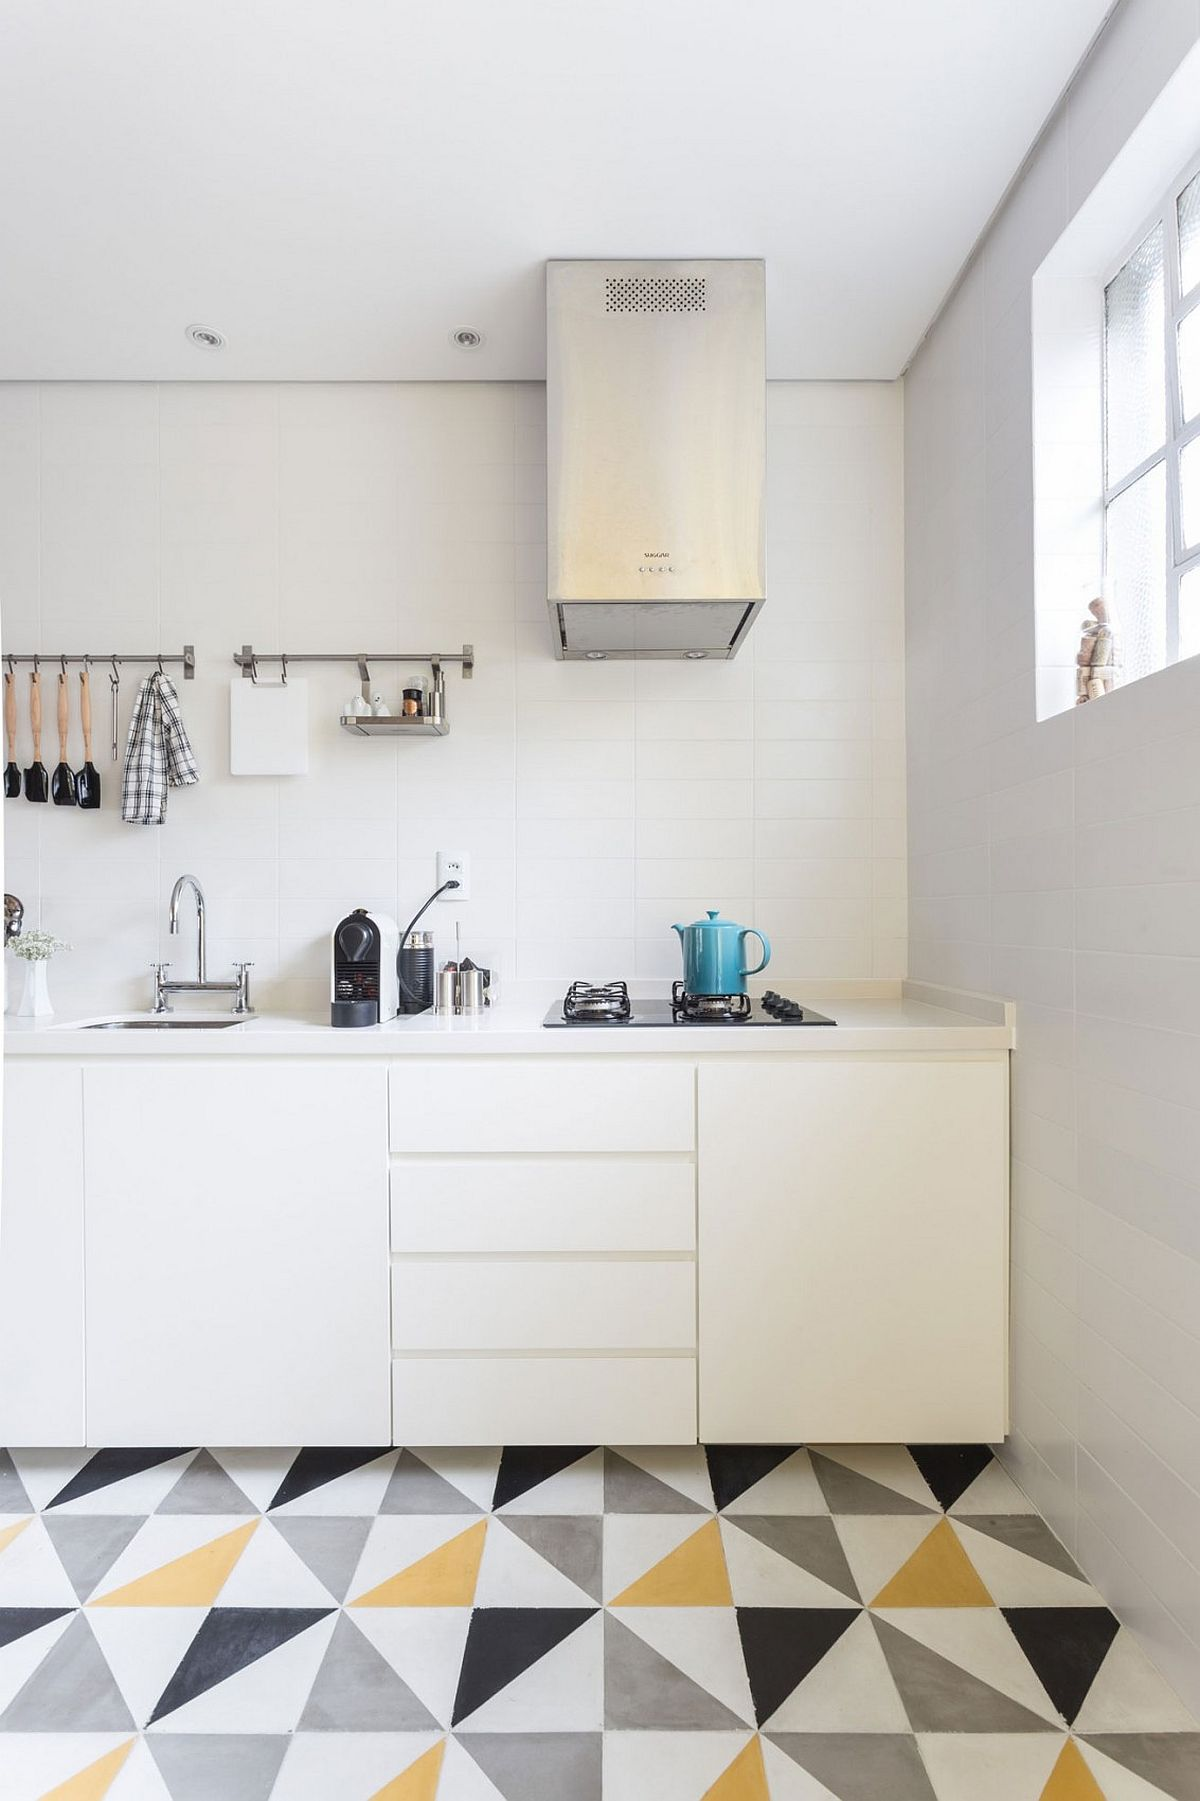 Small kitchen design in white with a counter that leads to the dining